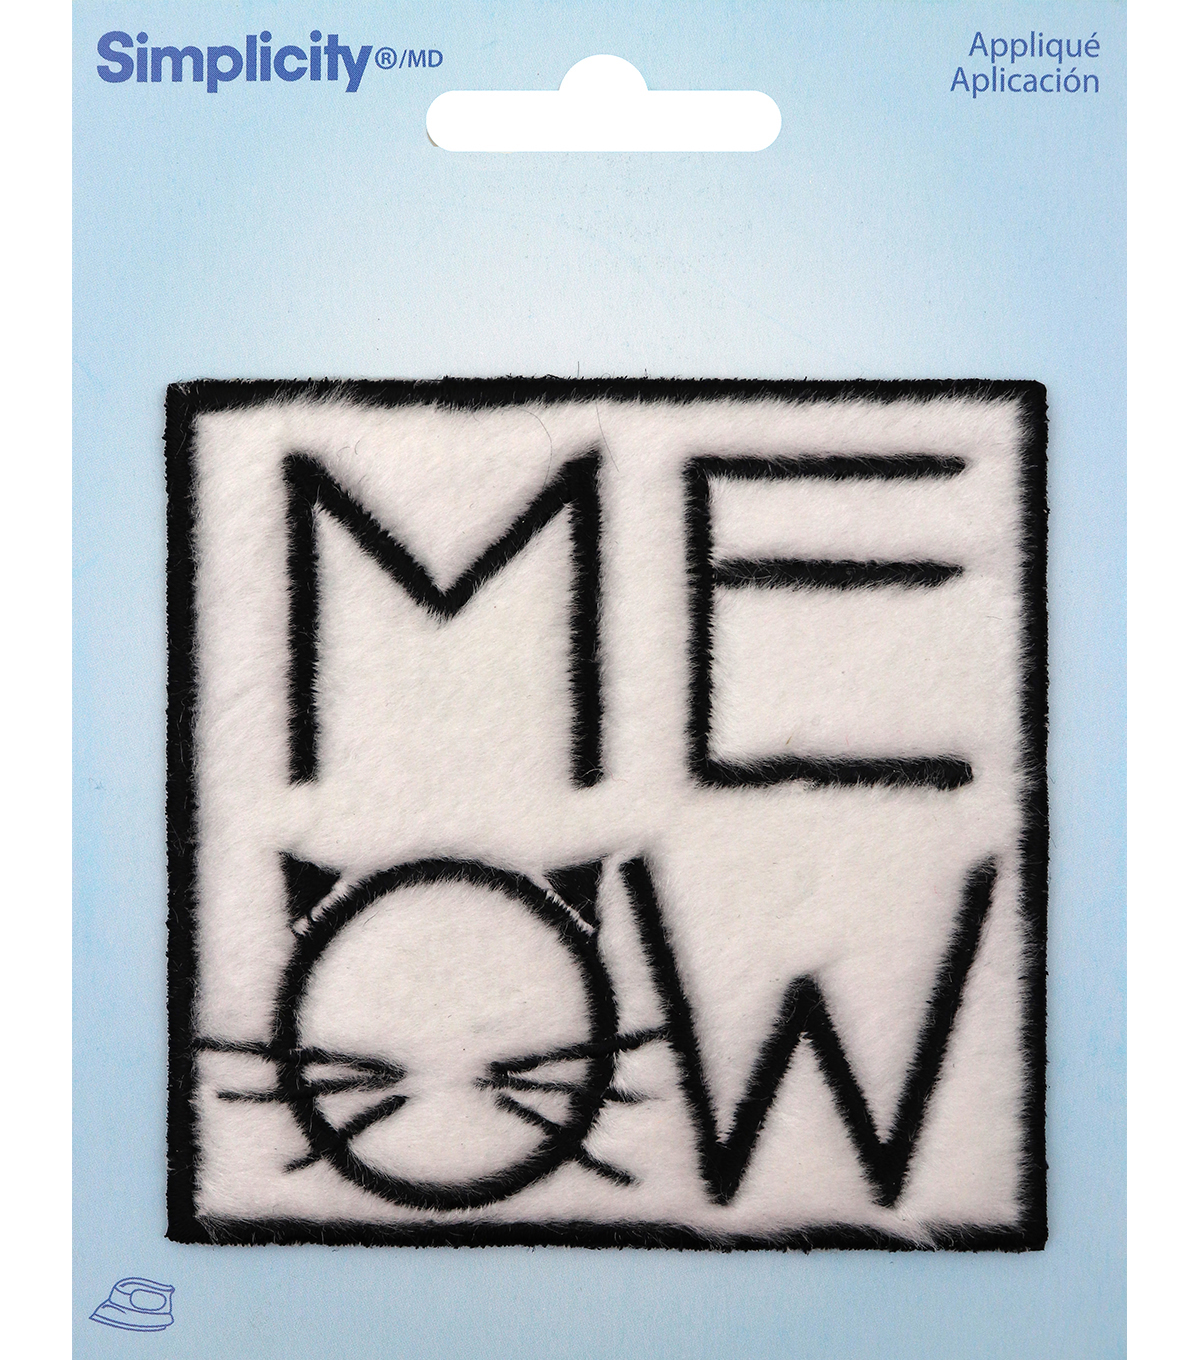 Simplicity Faux Fur Square Iron-on Applique-Black Meow on White